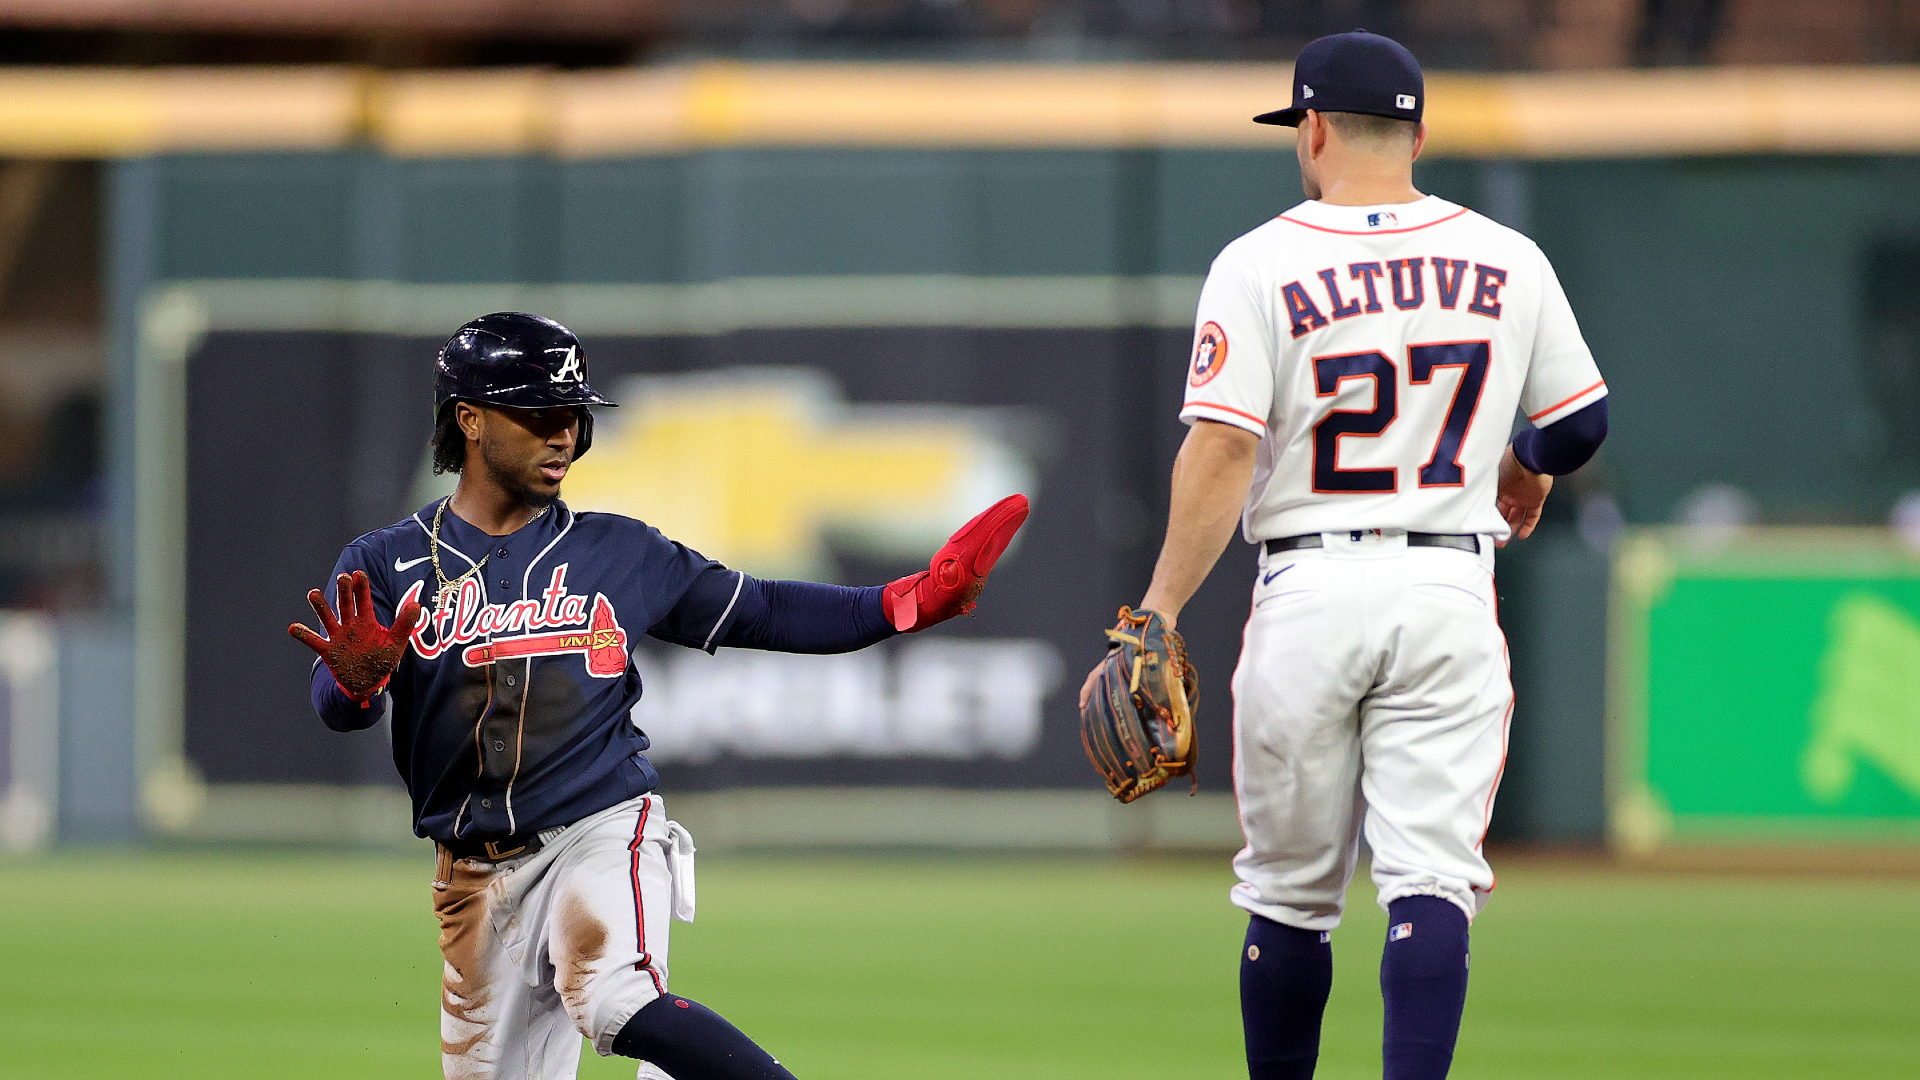 How to get free tacos at Taco Bell, thanks to Ozzie Albies' stolen base at World Series